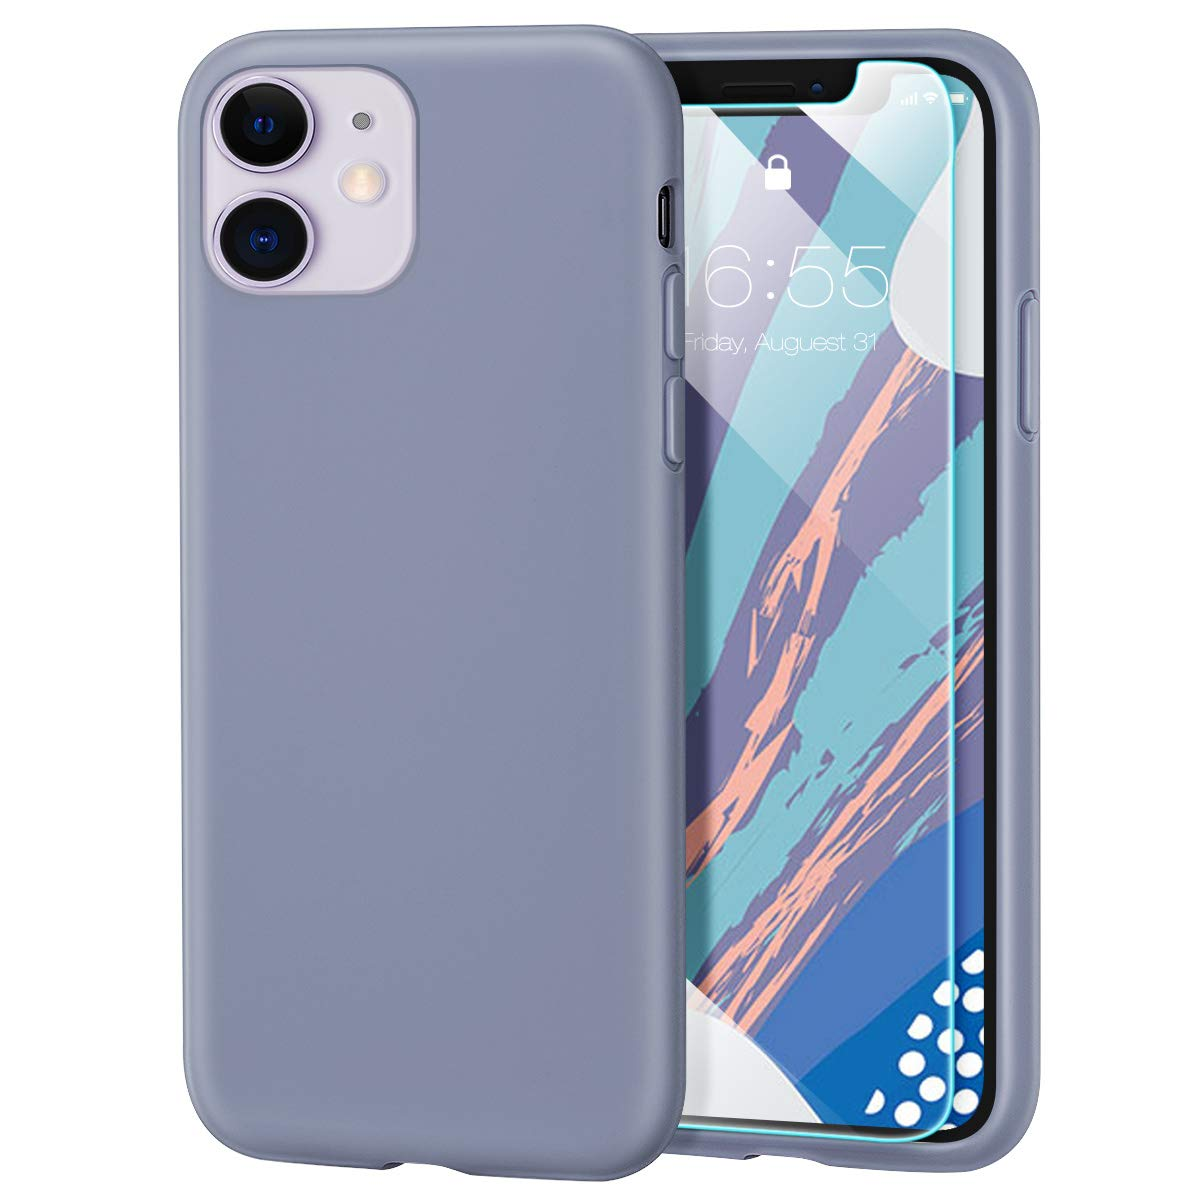 MILPROX iPhone 11 Case with Screen Protector, Liquid Silicone Gel Rubber Shockproof Slim Shell with Soft Microfiber Cloth Lining Cushion Cover for iPhone 11 6.1 inch (2019)-Lavender Gray